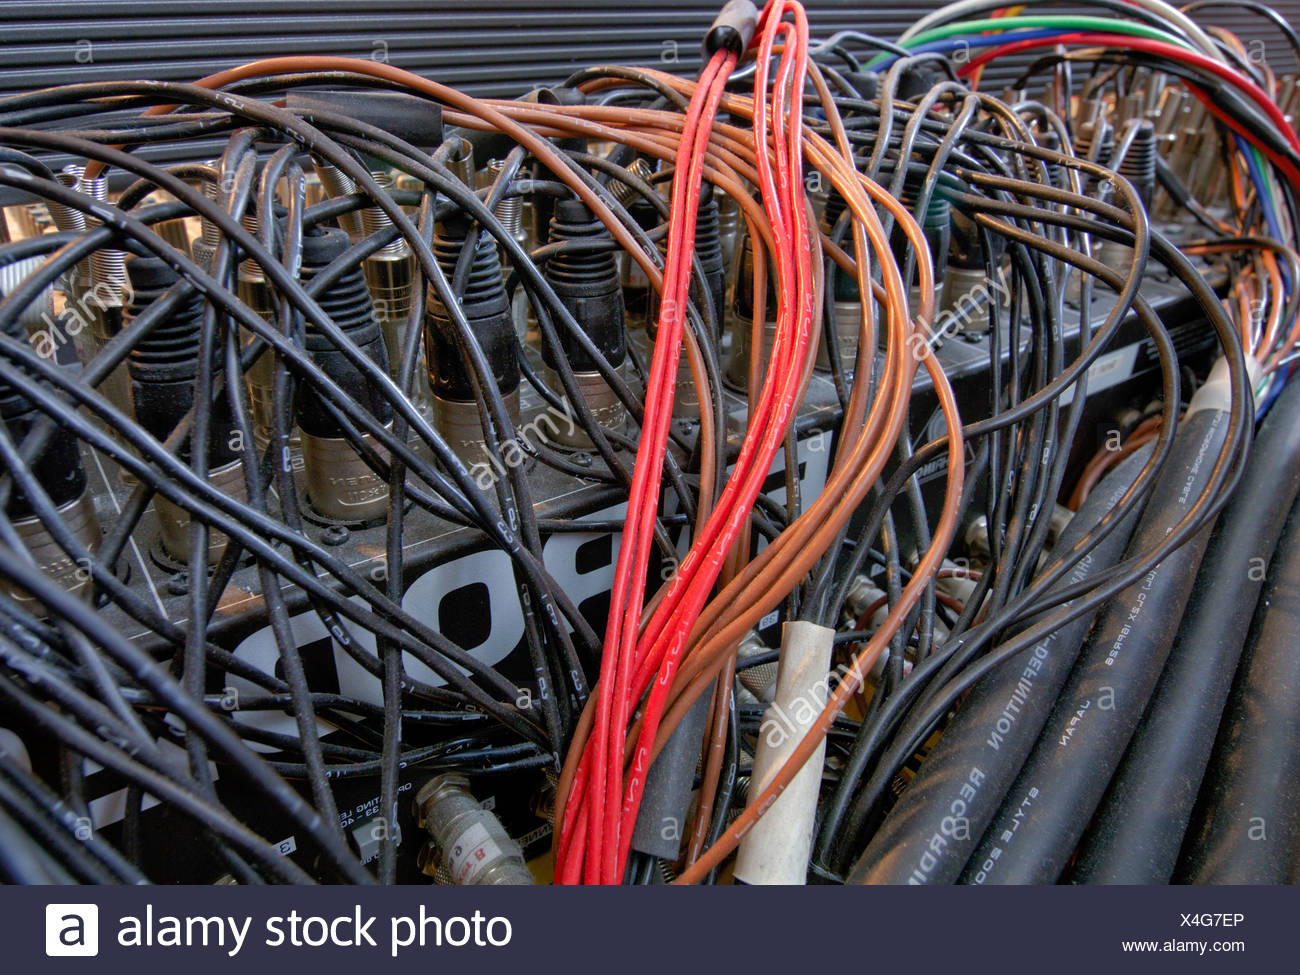 Jumble of cables behind a mixer in a sound studio - Stock Image